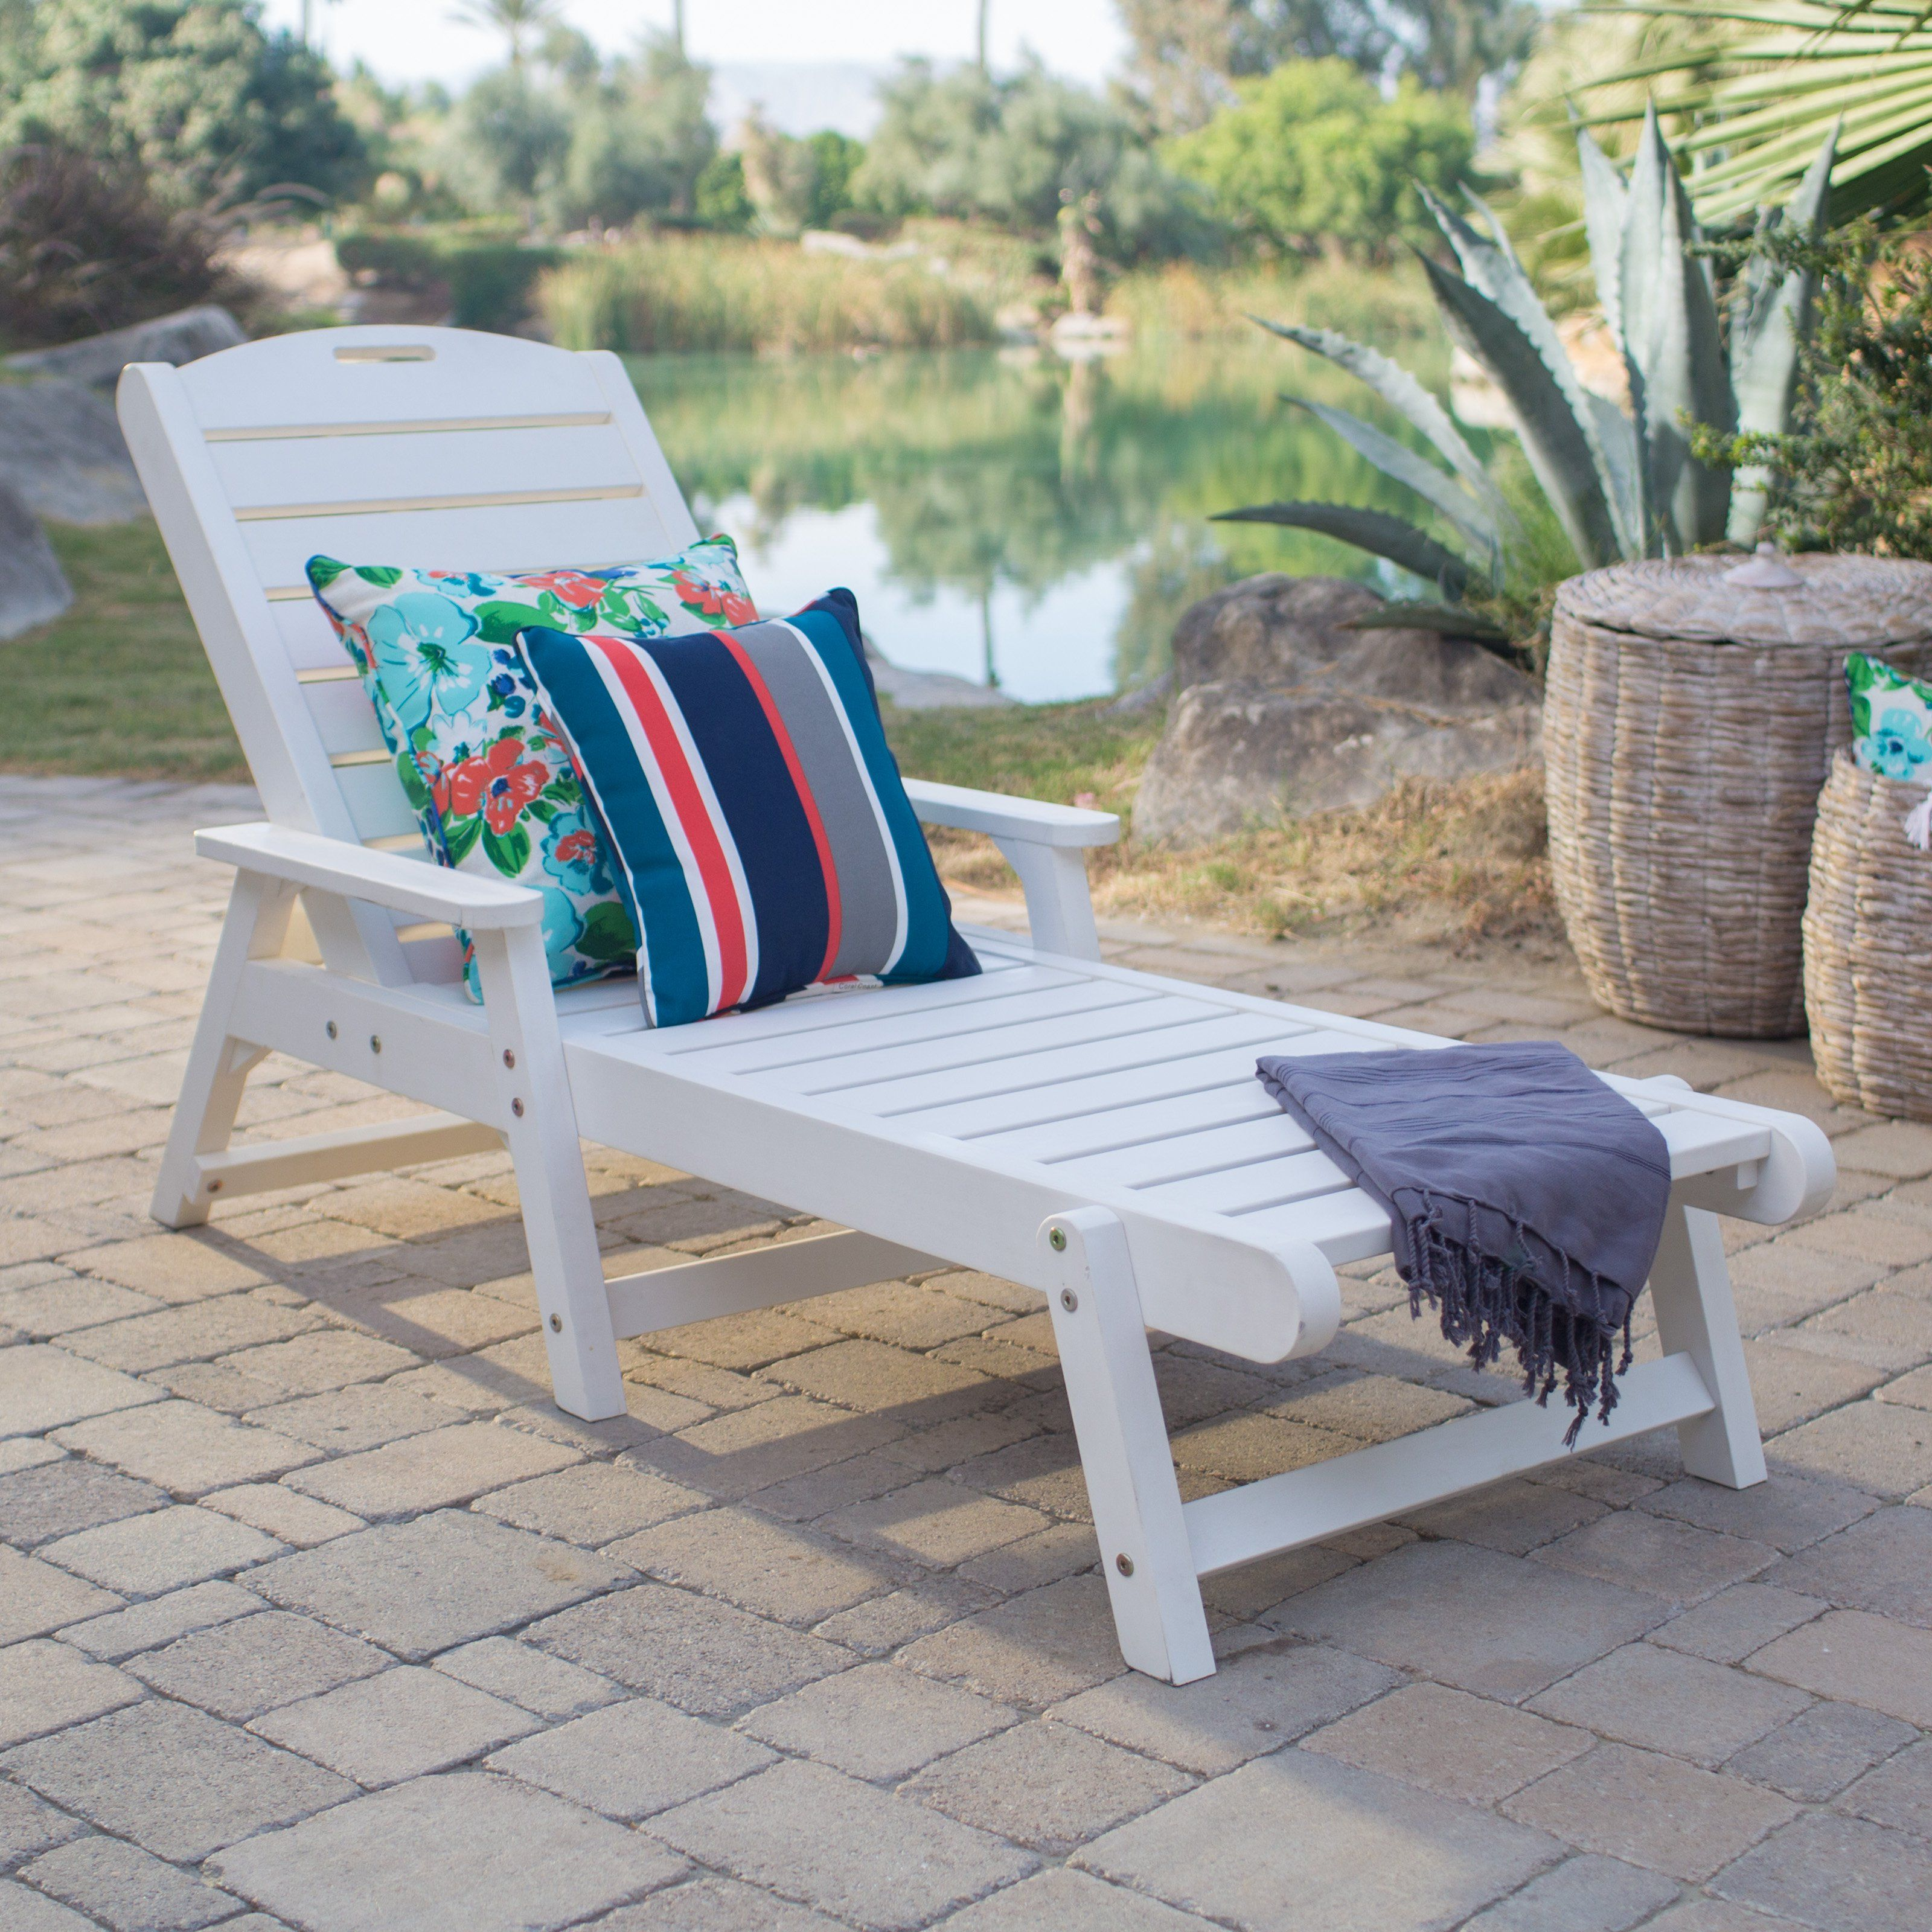 Resin Patio Lounge Chairs Clam Shell Chair Outdoor Belham Living Seacrest Cottage All Weather Chaise White From Hayneedle Com